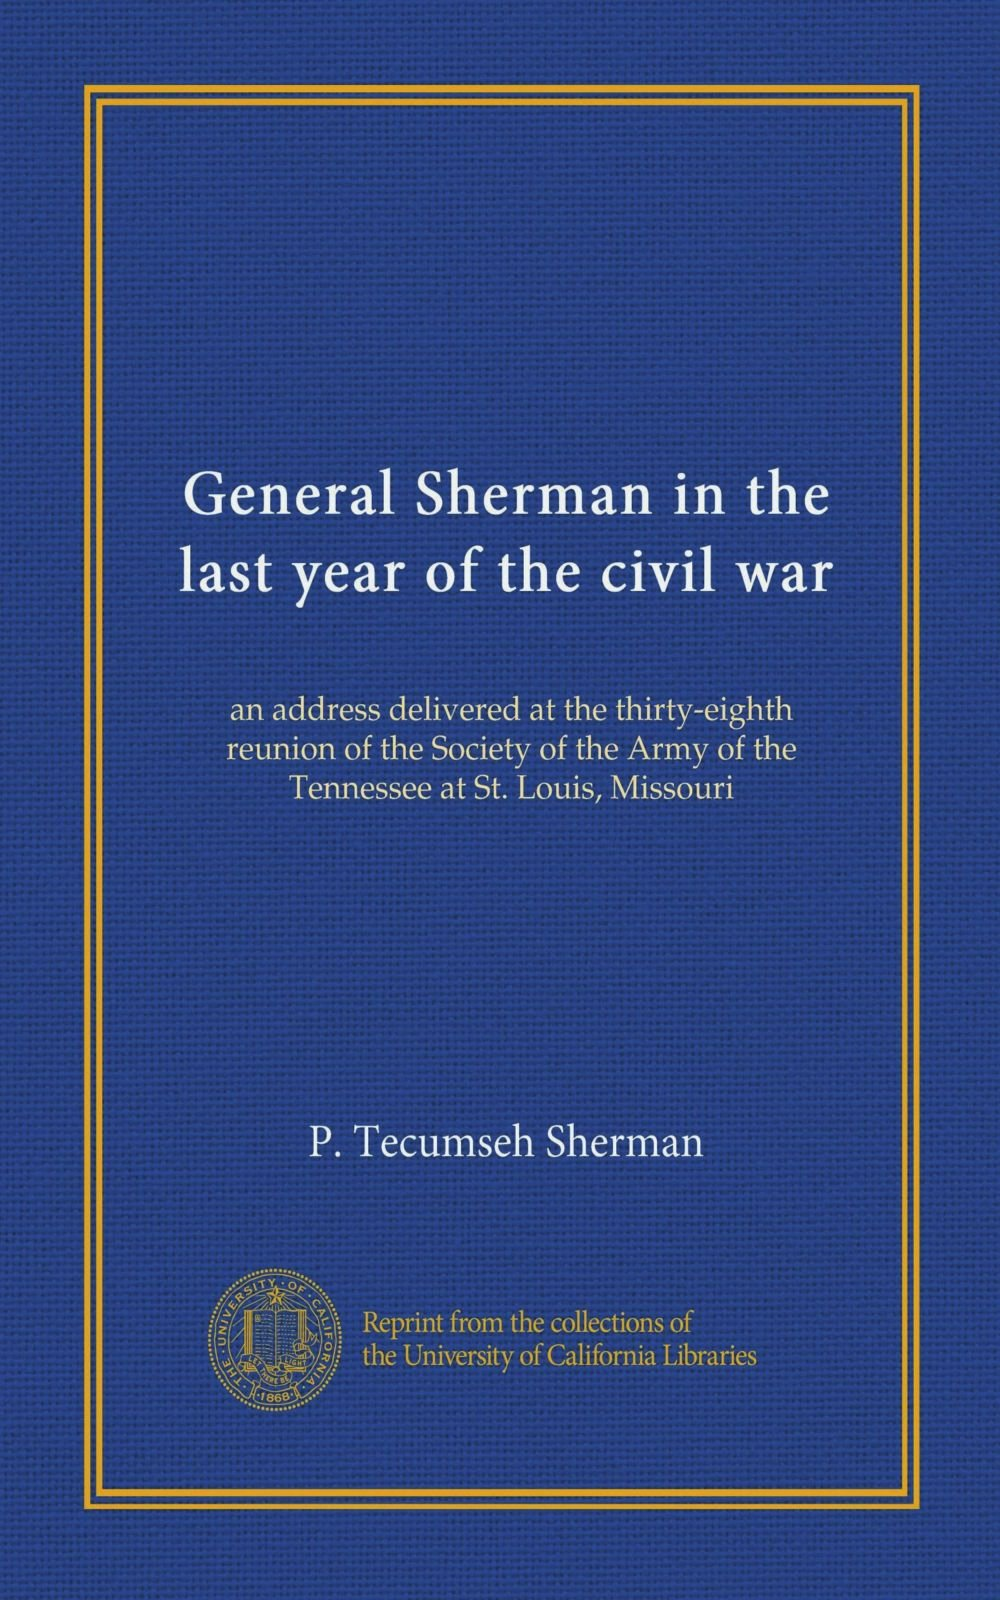 General Sherman in the last year of the civil war: an address delivered at the thirty-eighth reunion of the Society of the Army of the Tennessee at St. Louis, Missouri pdf epub